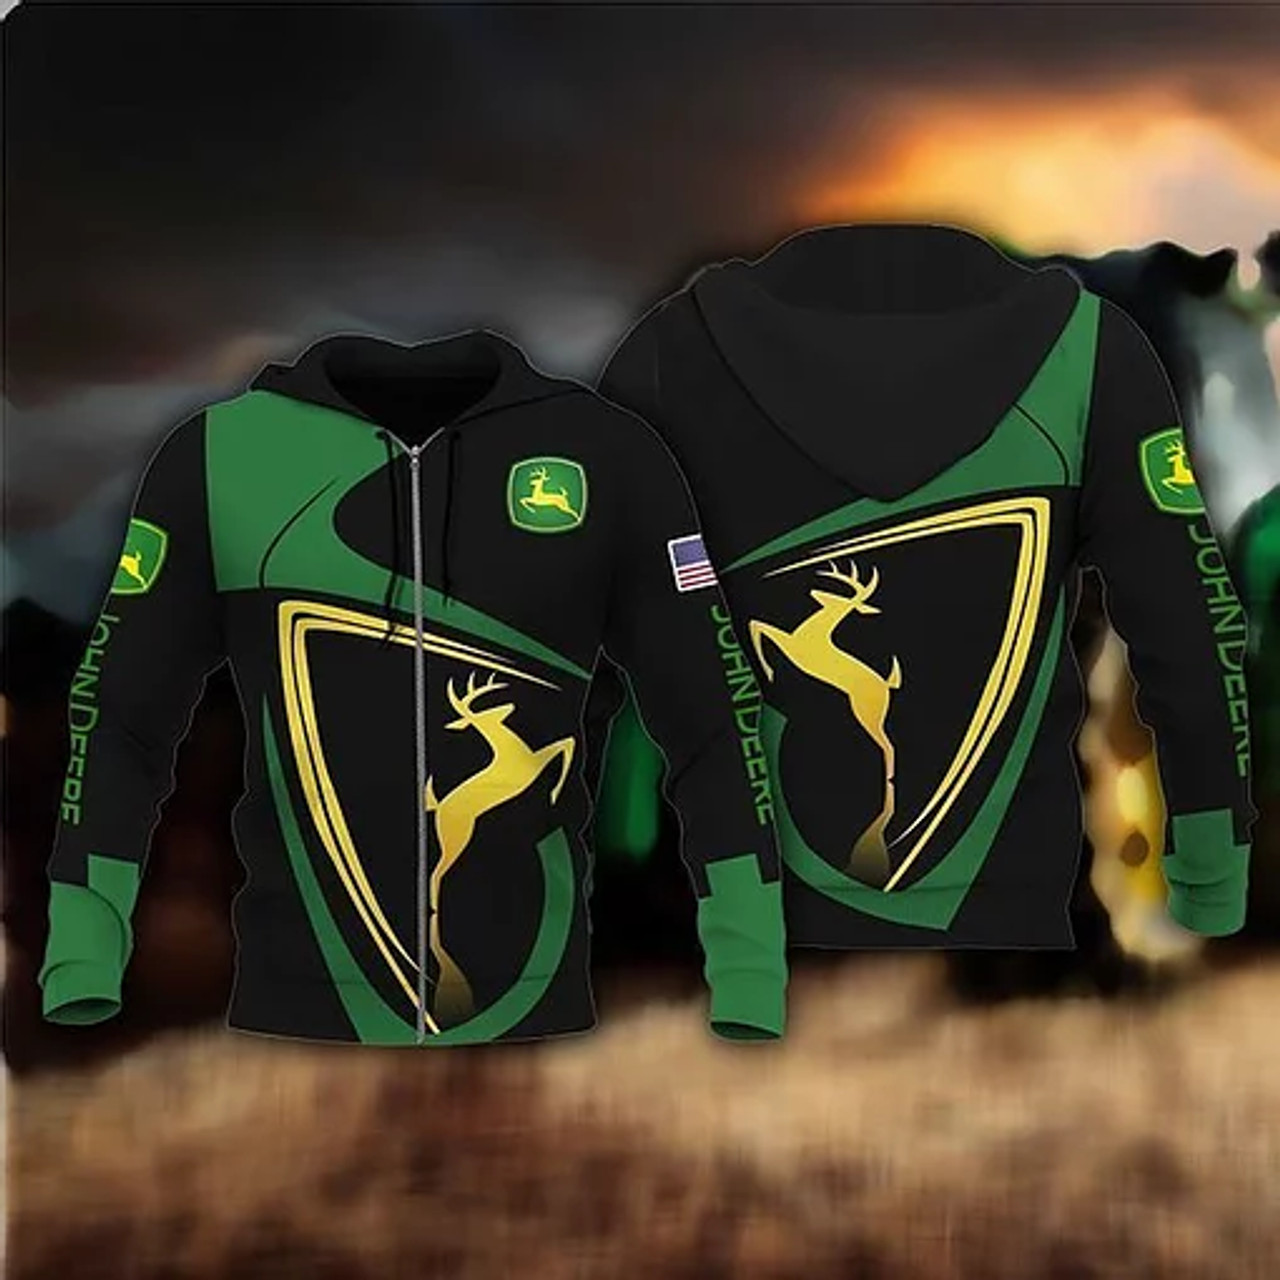 - OFFICIAL-JOHN-DEERE-ZIPPERED-HOODIE/TRENDY-NEW-CUSTOMIZED-3D-PRINTED-GRAPHIC-PRINTED-DESIGN-APPAREL!!